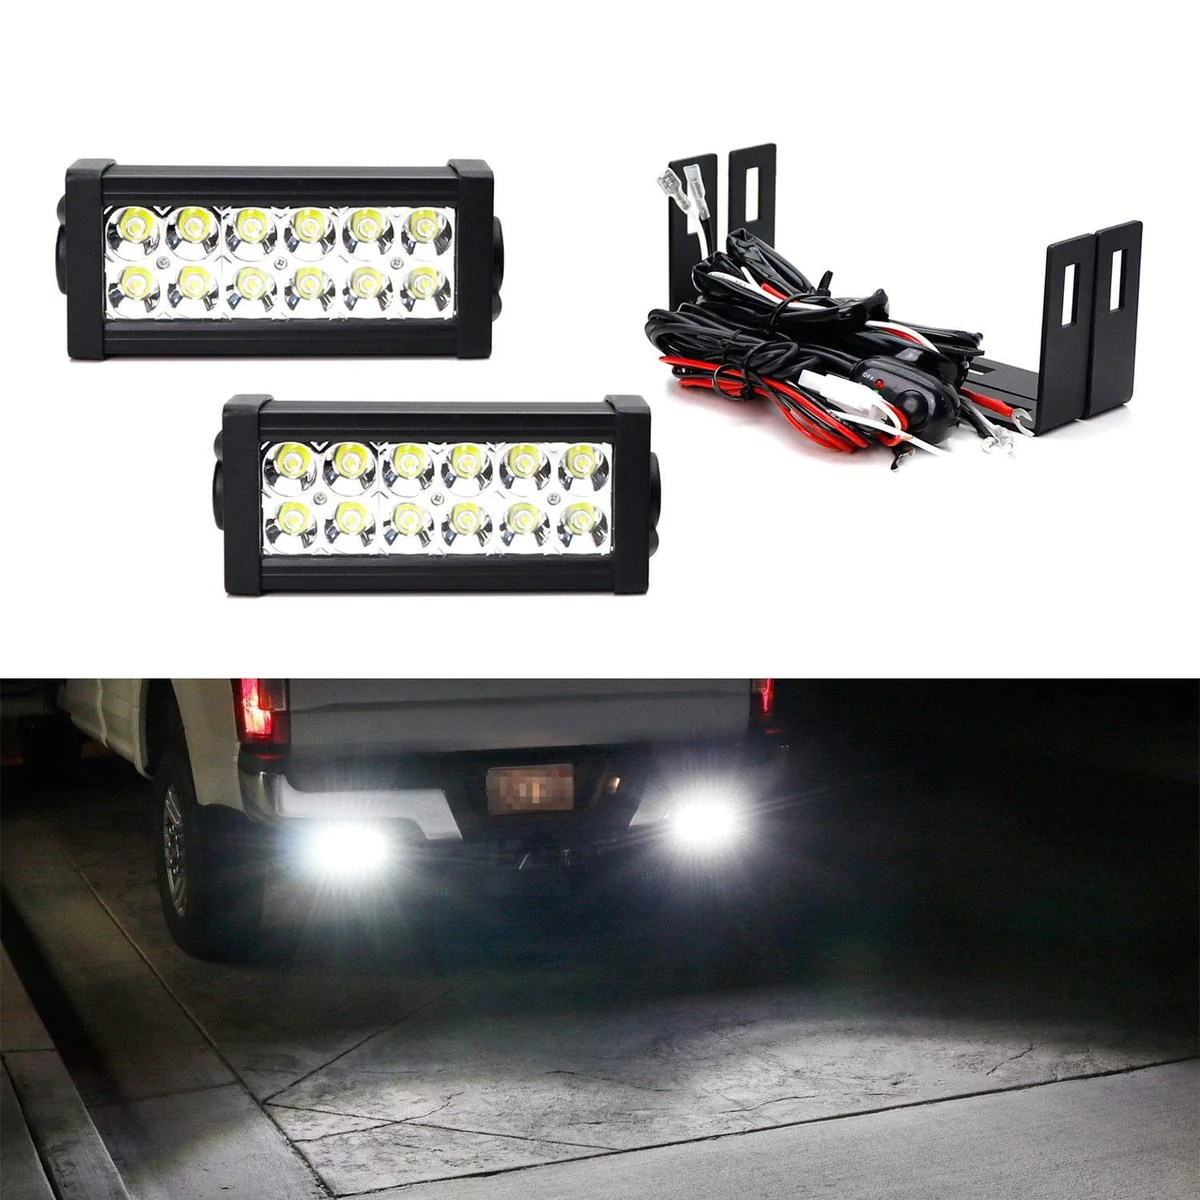 led light bar kit for 2012 up toyota tacoma 2014 up tundra 2 36w high power led lightbars bumper frame mounting brackets on off switch wiring [ 1200 x 1200 Pixel ]